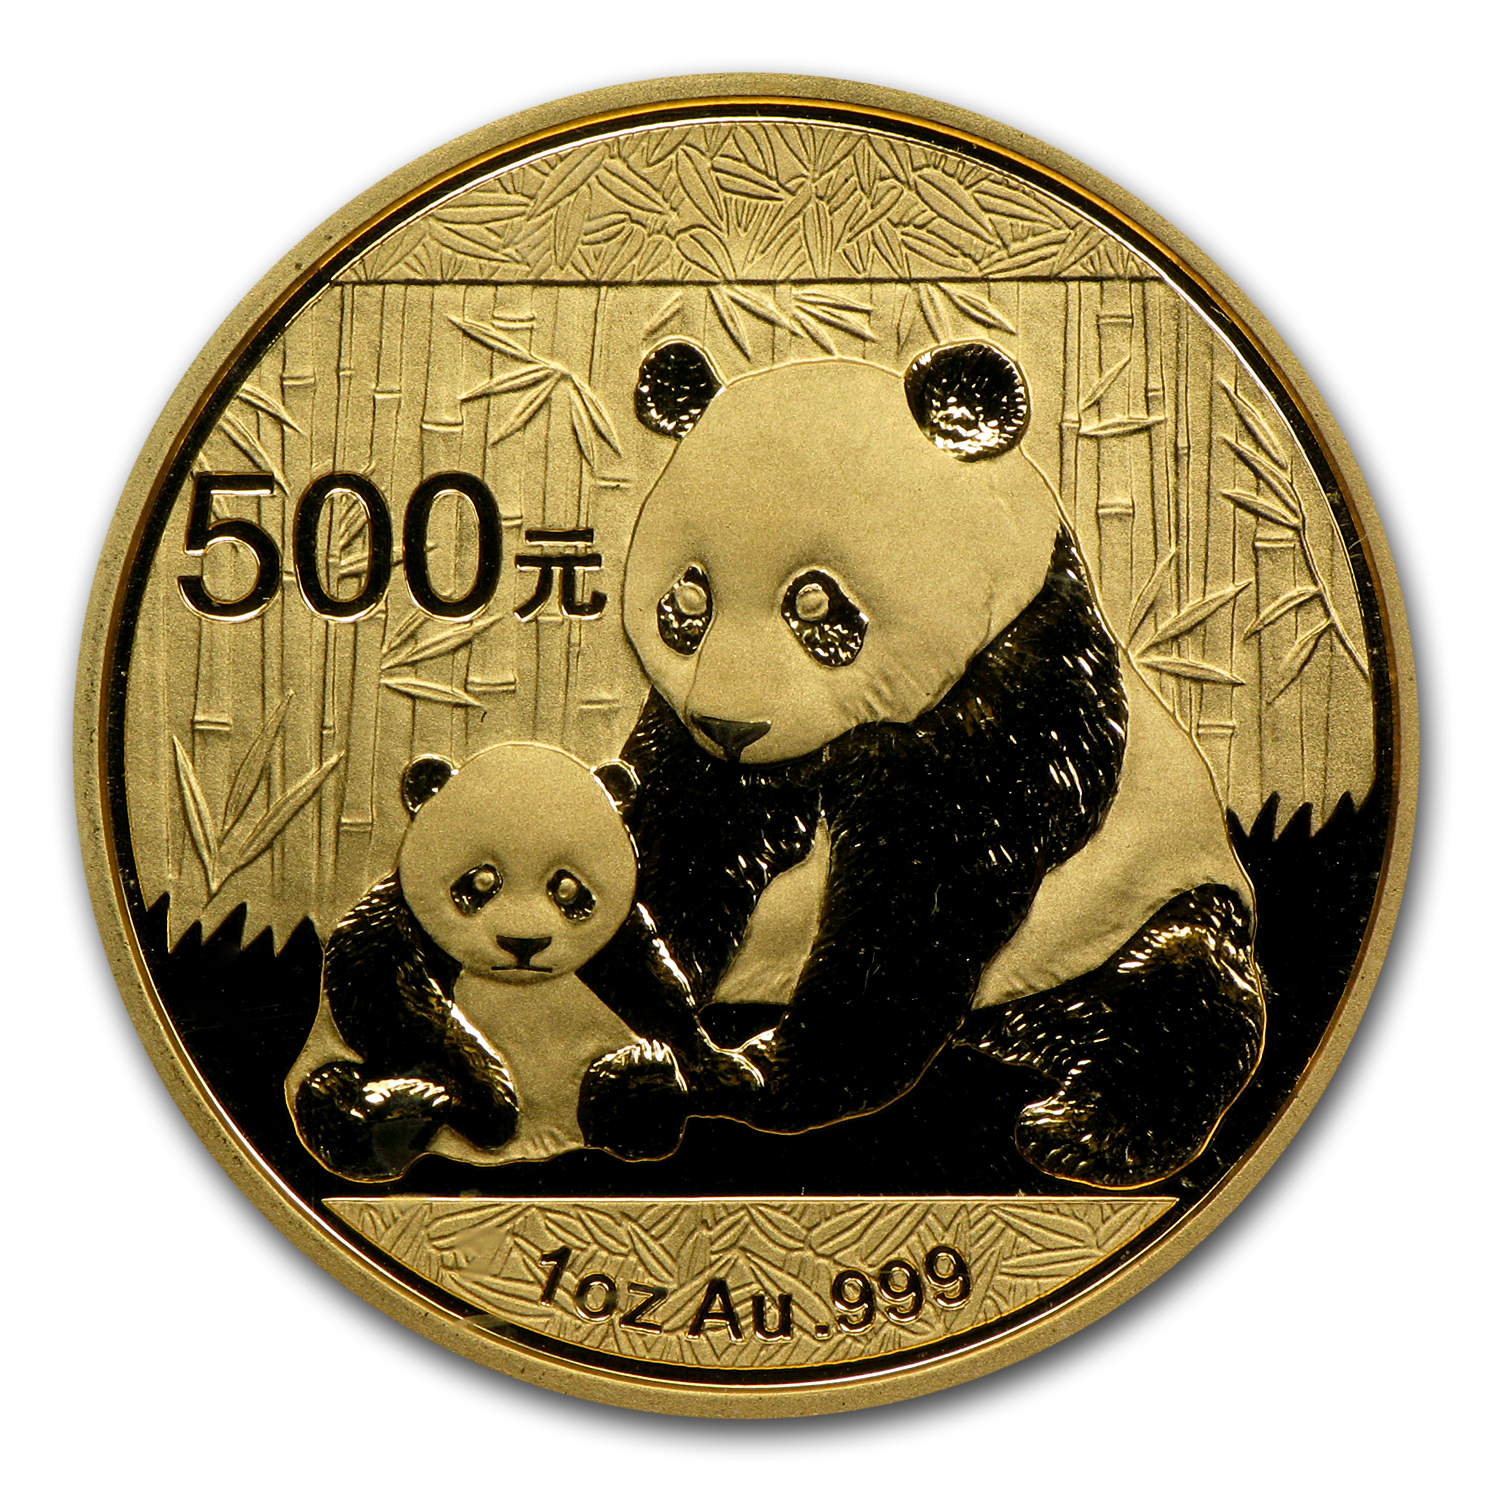 2012 China 1 oz Gold Panda MS-70 PCGS